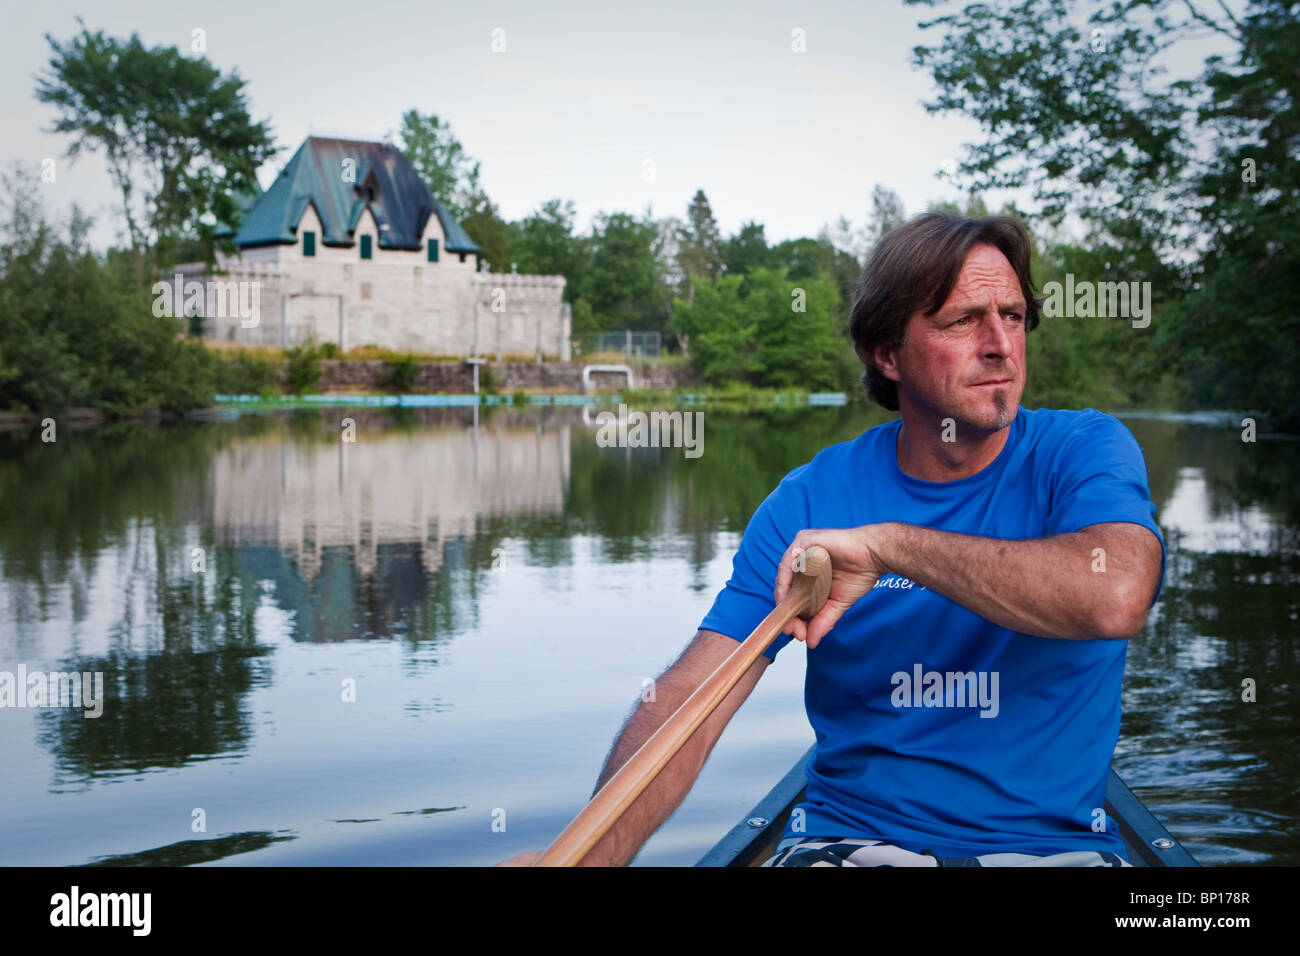 Huron native Jean Legare paddles a canoe on the riviere St-Charles river in the native reserve of Wendake - Stock Image